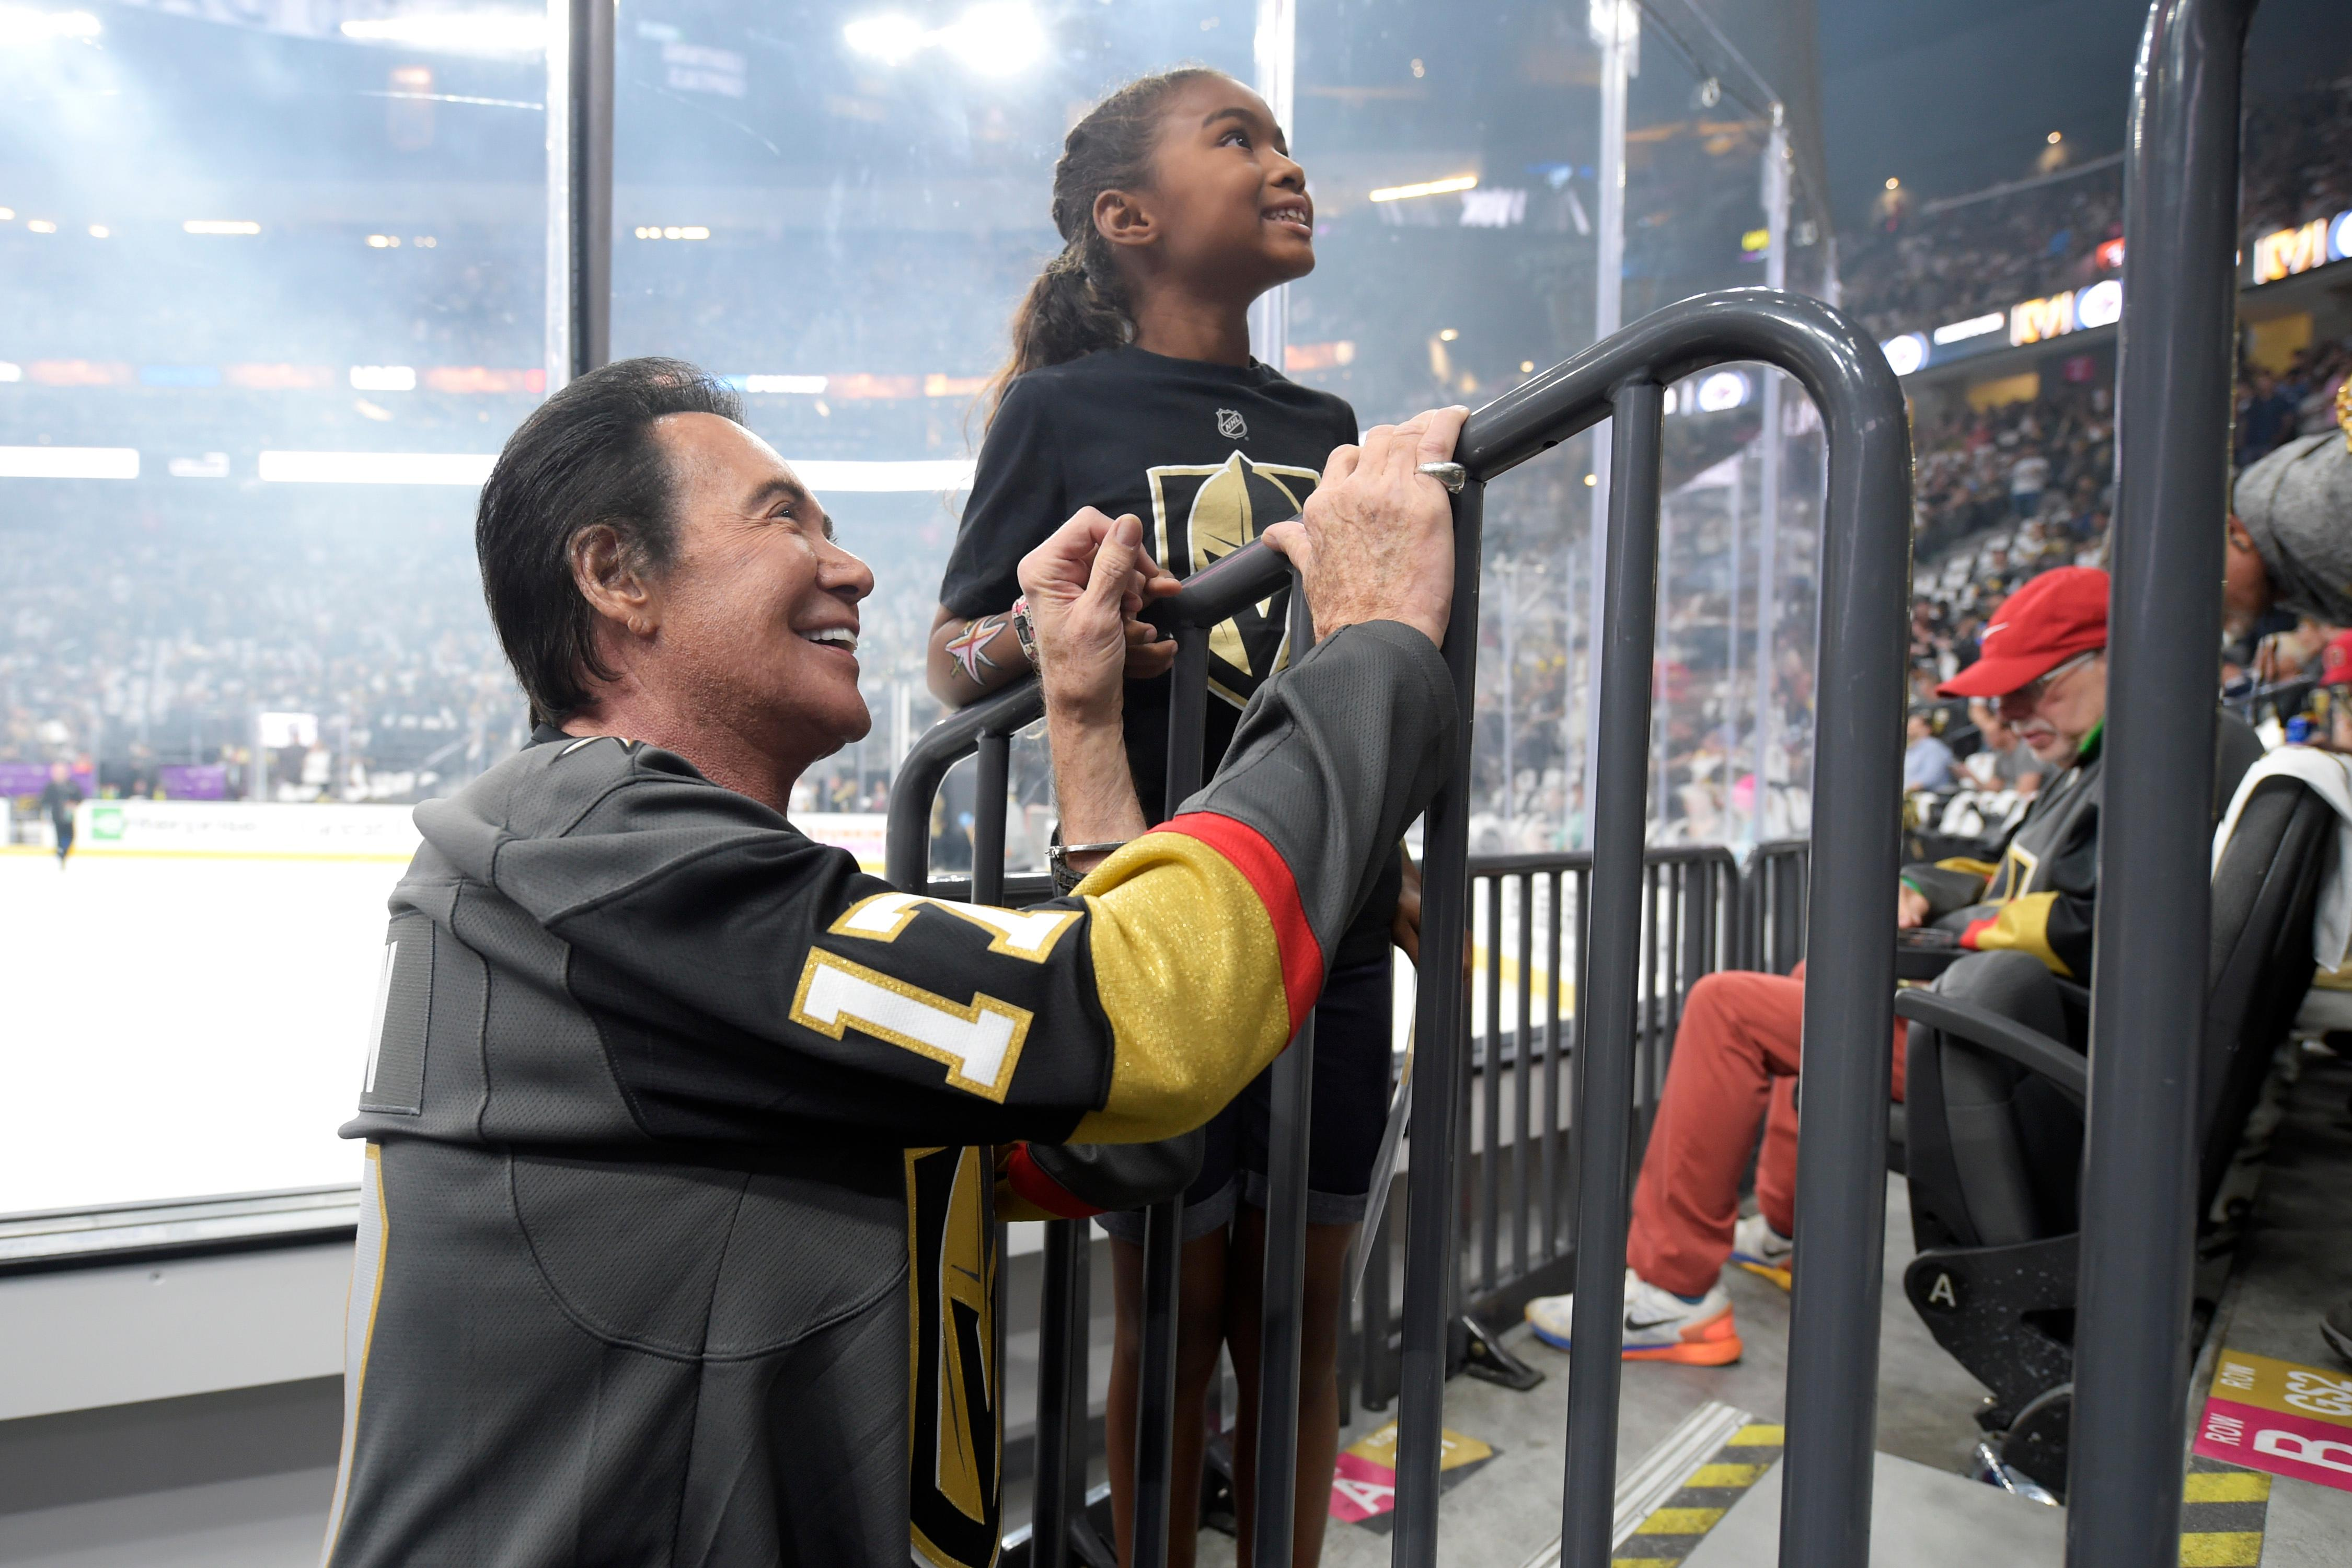 Wayne Newton poses for a photo with a young Vegas Golden Knights fan before Game 4 of their NHL hockey Western Conference Final game against the Winnipeg Jets Friday, May 18, 2018, at T-Mobile Arena. CREDIT: Sam Morris/Las Vegas News Bureau